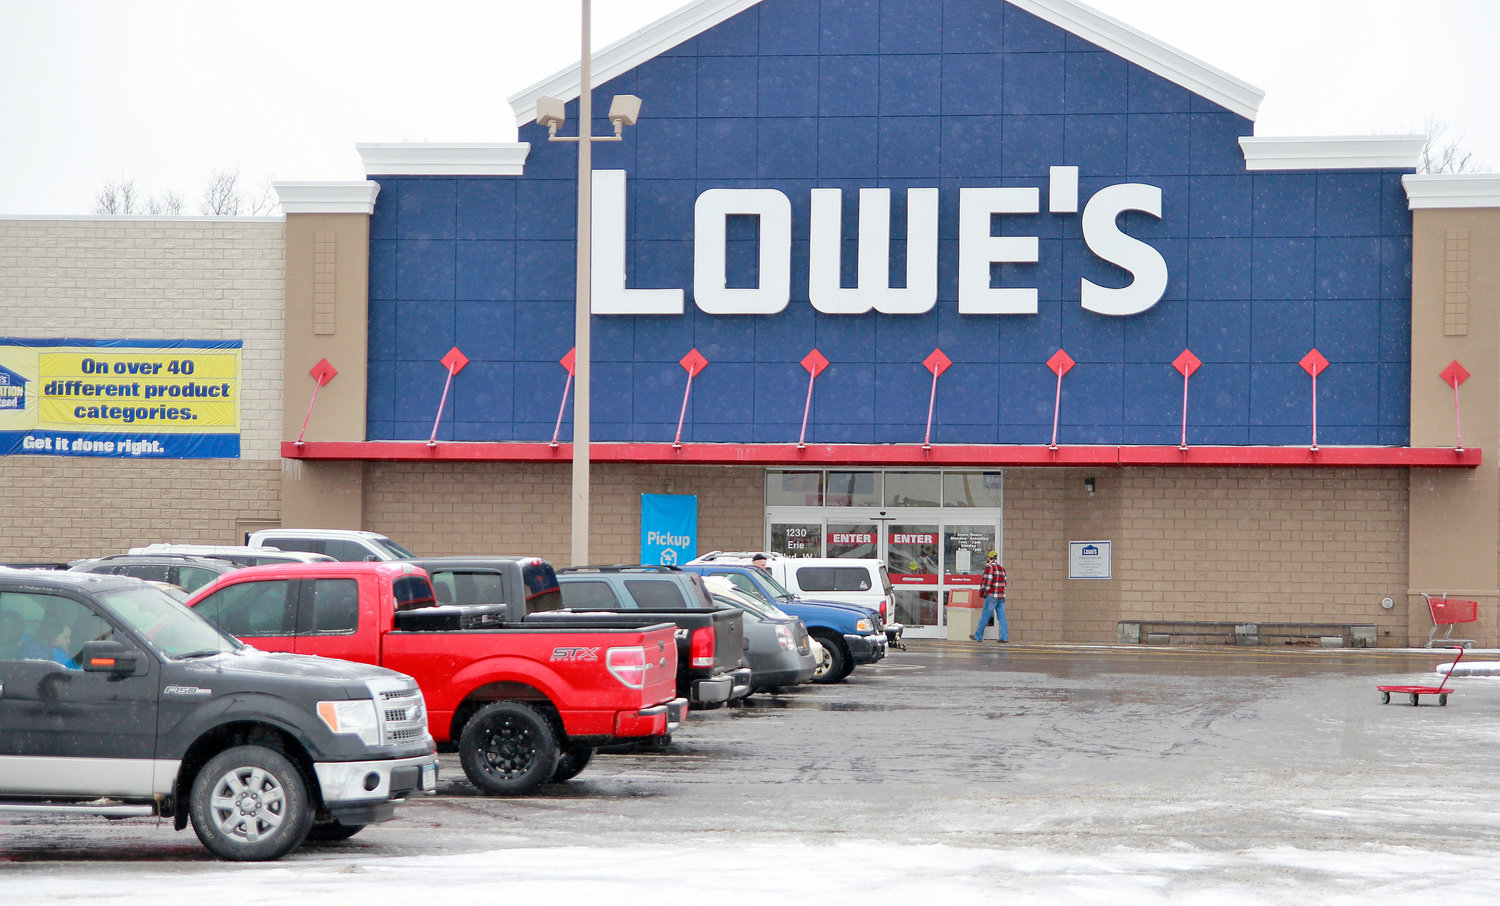 BUSINESS AS USUAL — Post-holiday shoppers kept business brisk at the Lowe's store at 1230 Erie Blvd. W. on Wednesday. Although the retailer is closing 51 stores in the U.S. and Canada, no local stores were impacted according to media releases on the company's website.